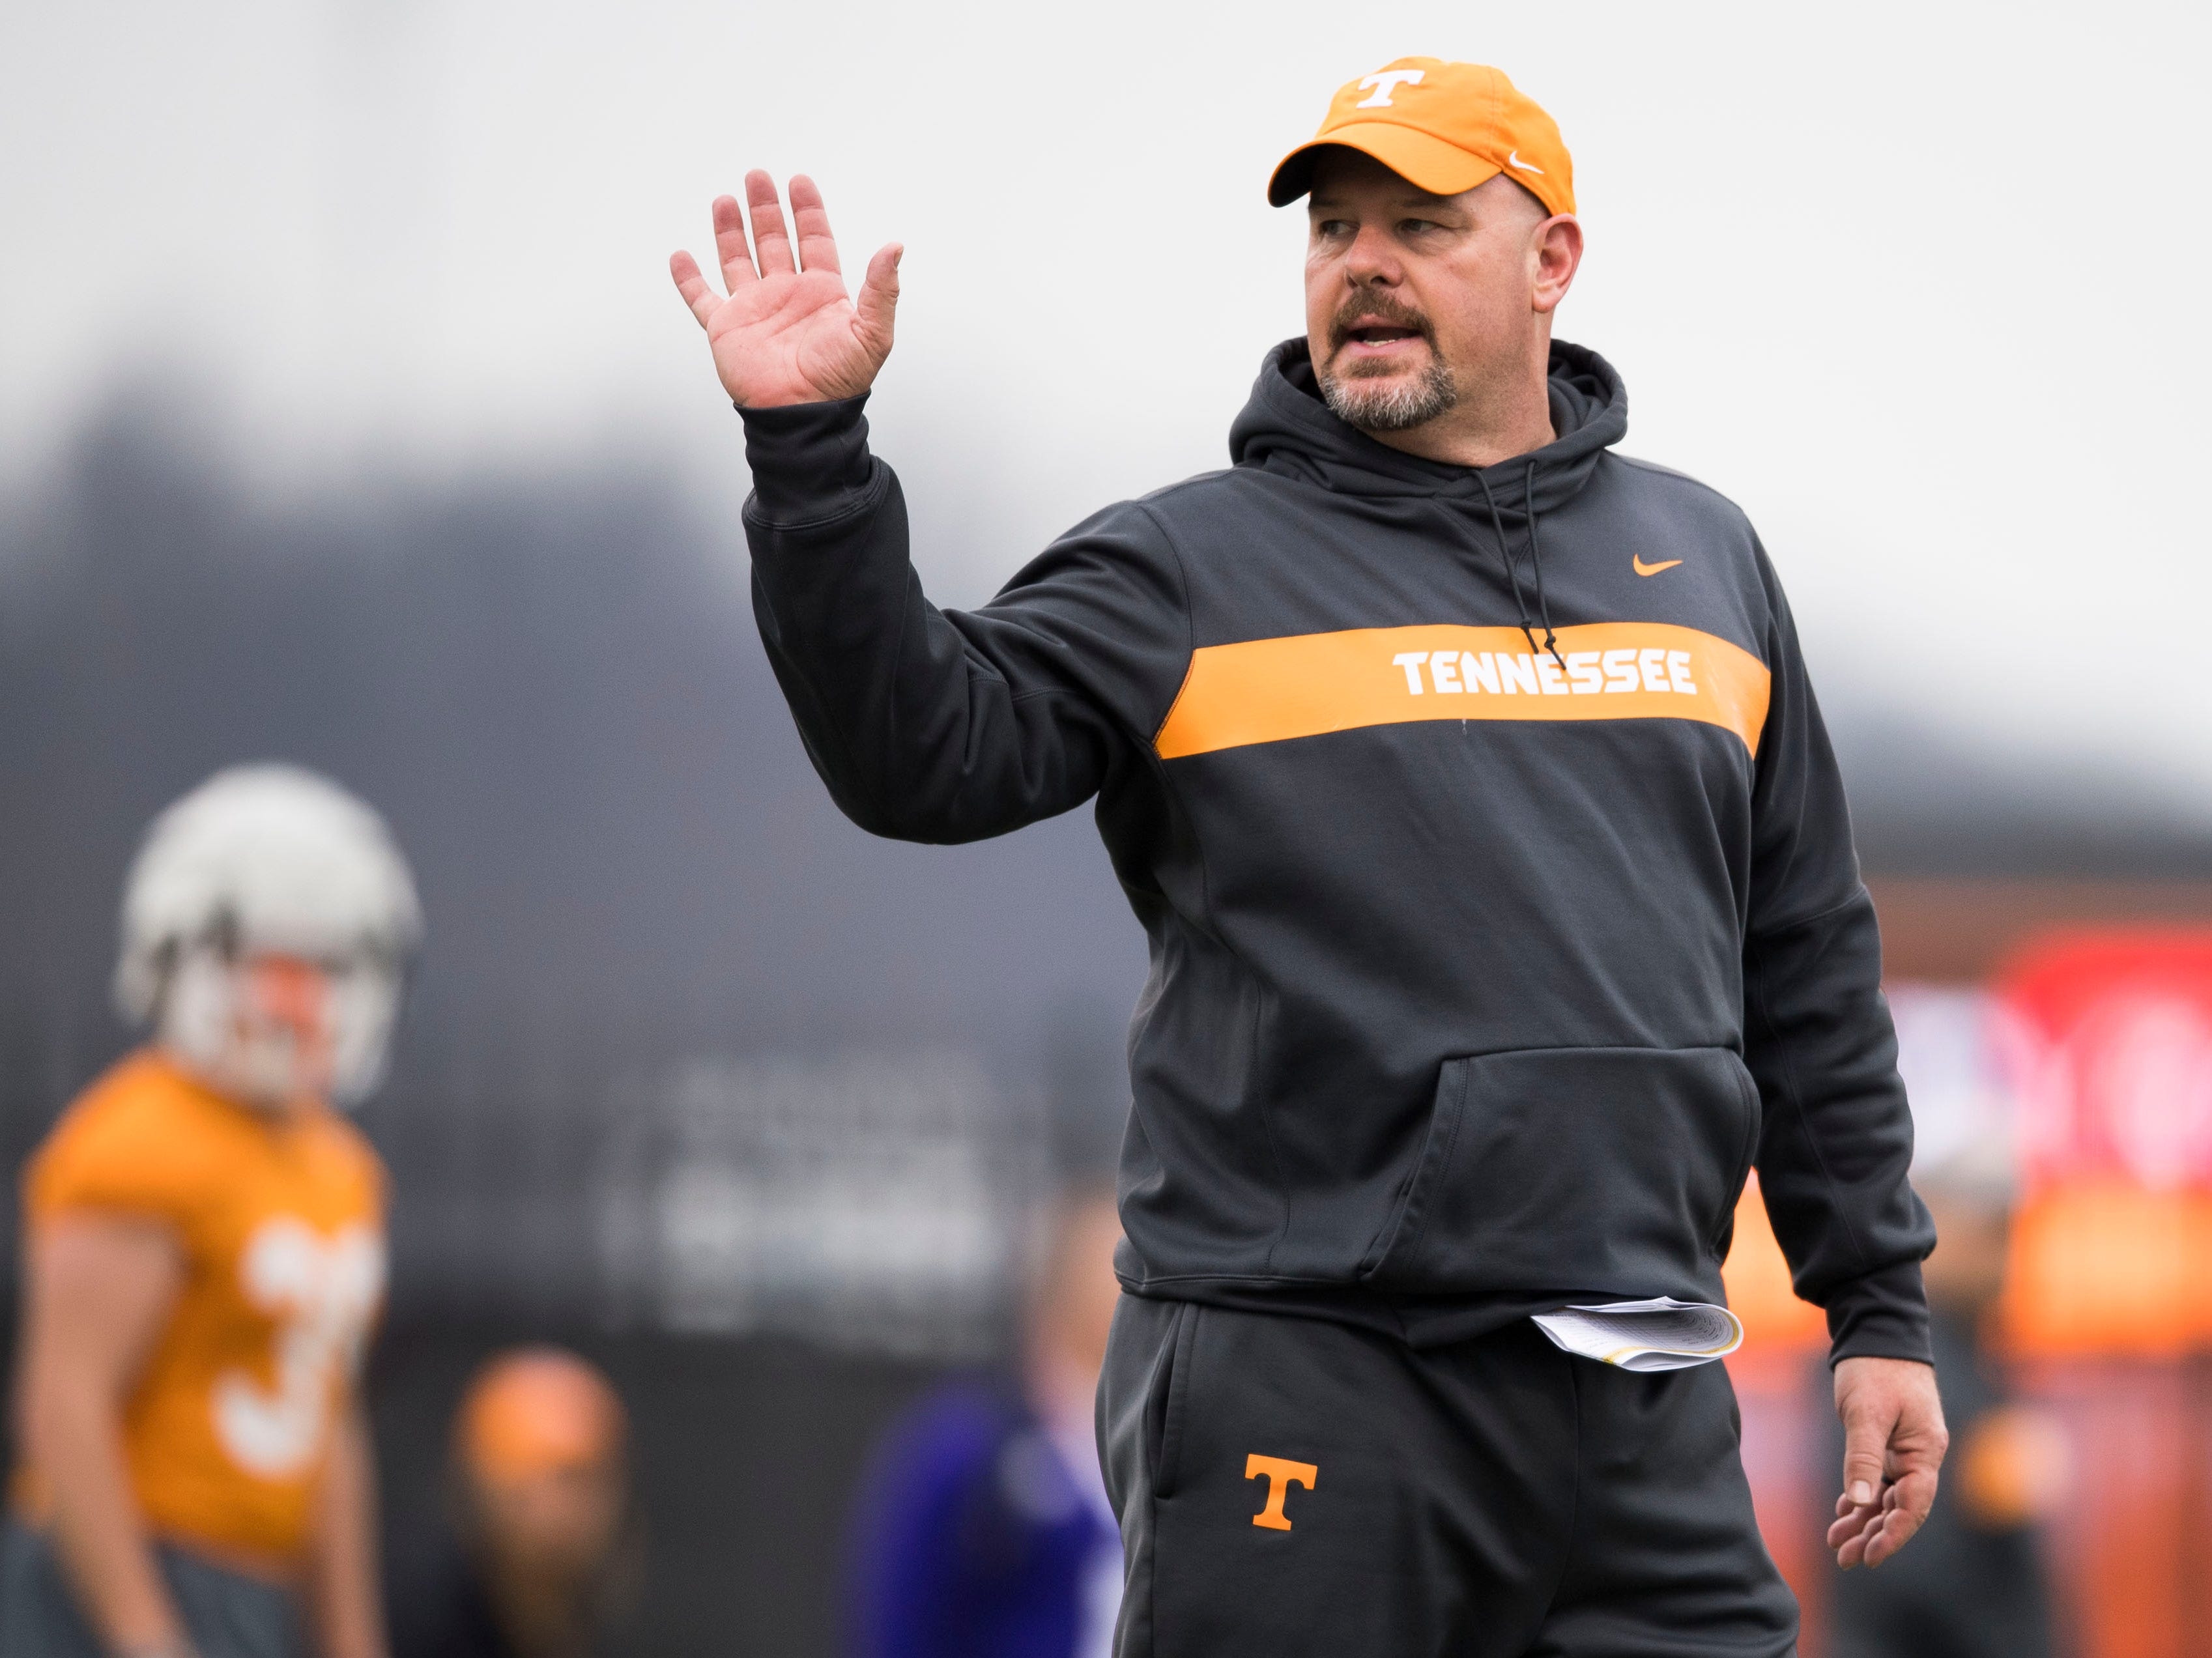 Tennessee offensive line coach Will Friend coaches during Tennessee football's first practice of the spring season at University of Tennessee Thursday, March 7, 2019.